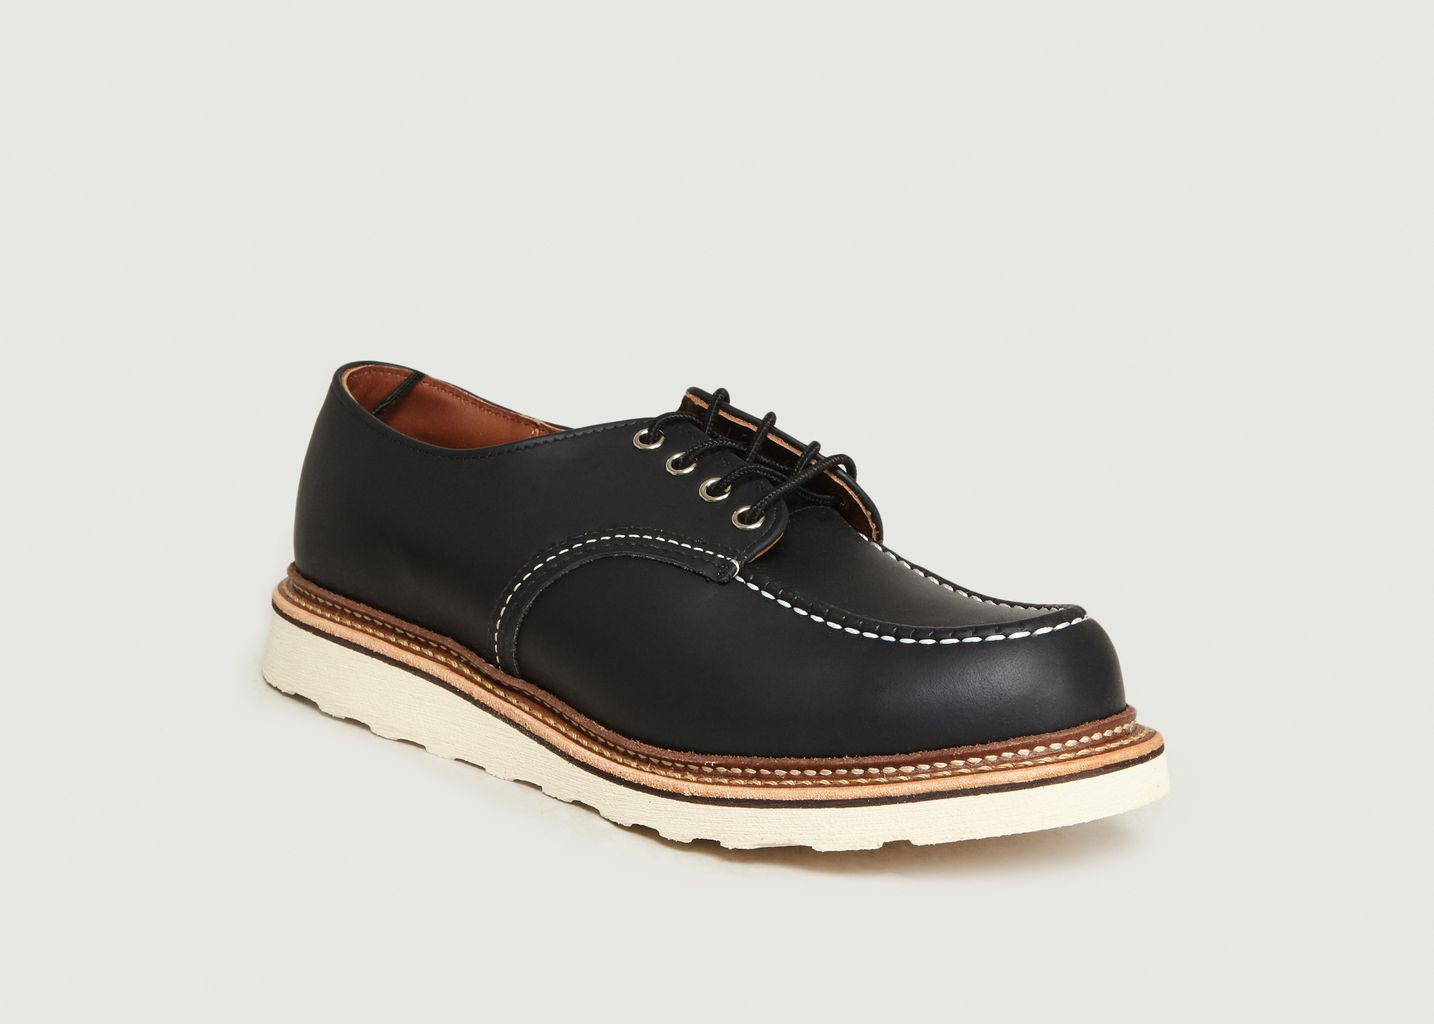 Mocassins Classic Oxford 8106 - Red Wing Shoes